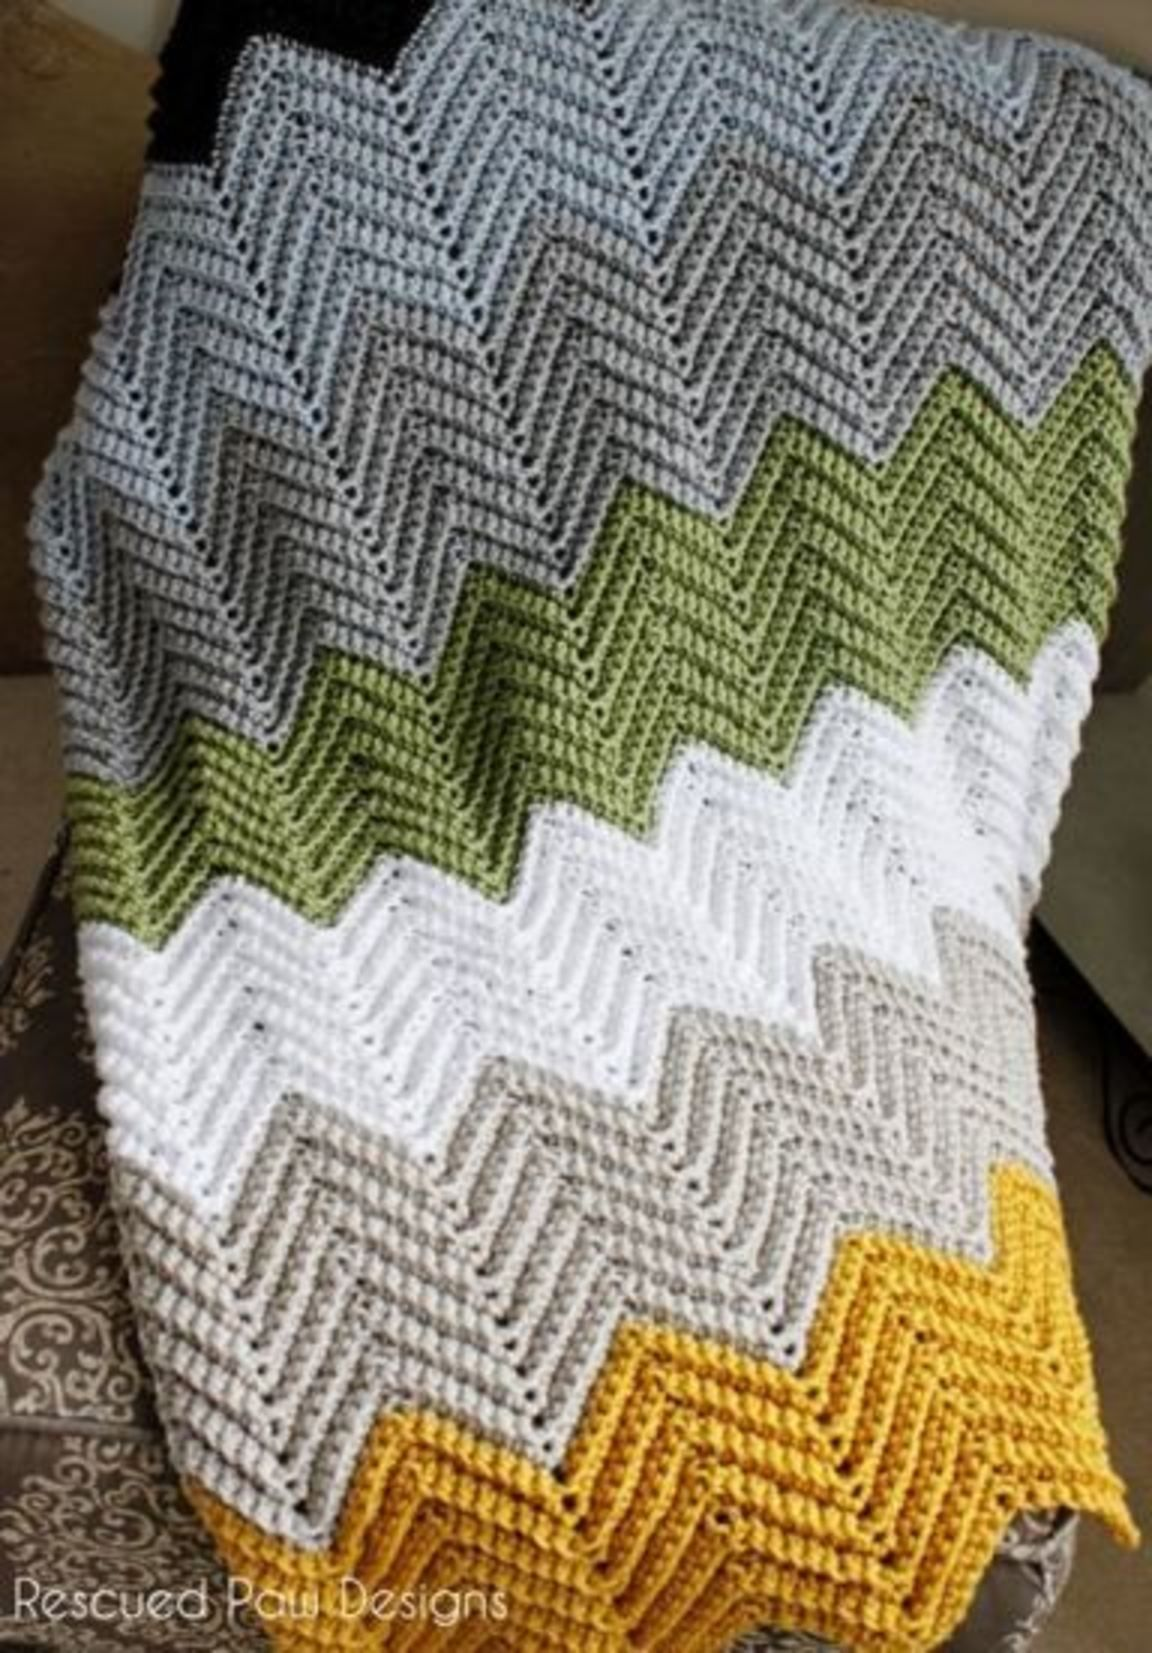 Free pattern crochet chevron blanket easy fast pattern free pattern crochet chevron blanket easy fast pattern bankloansurffo Image collections